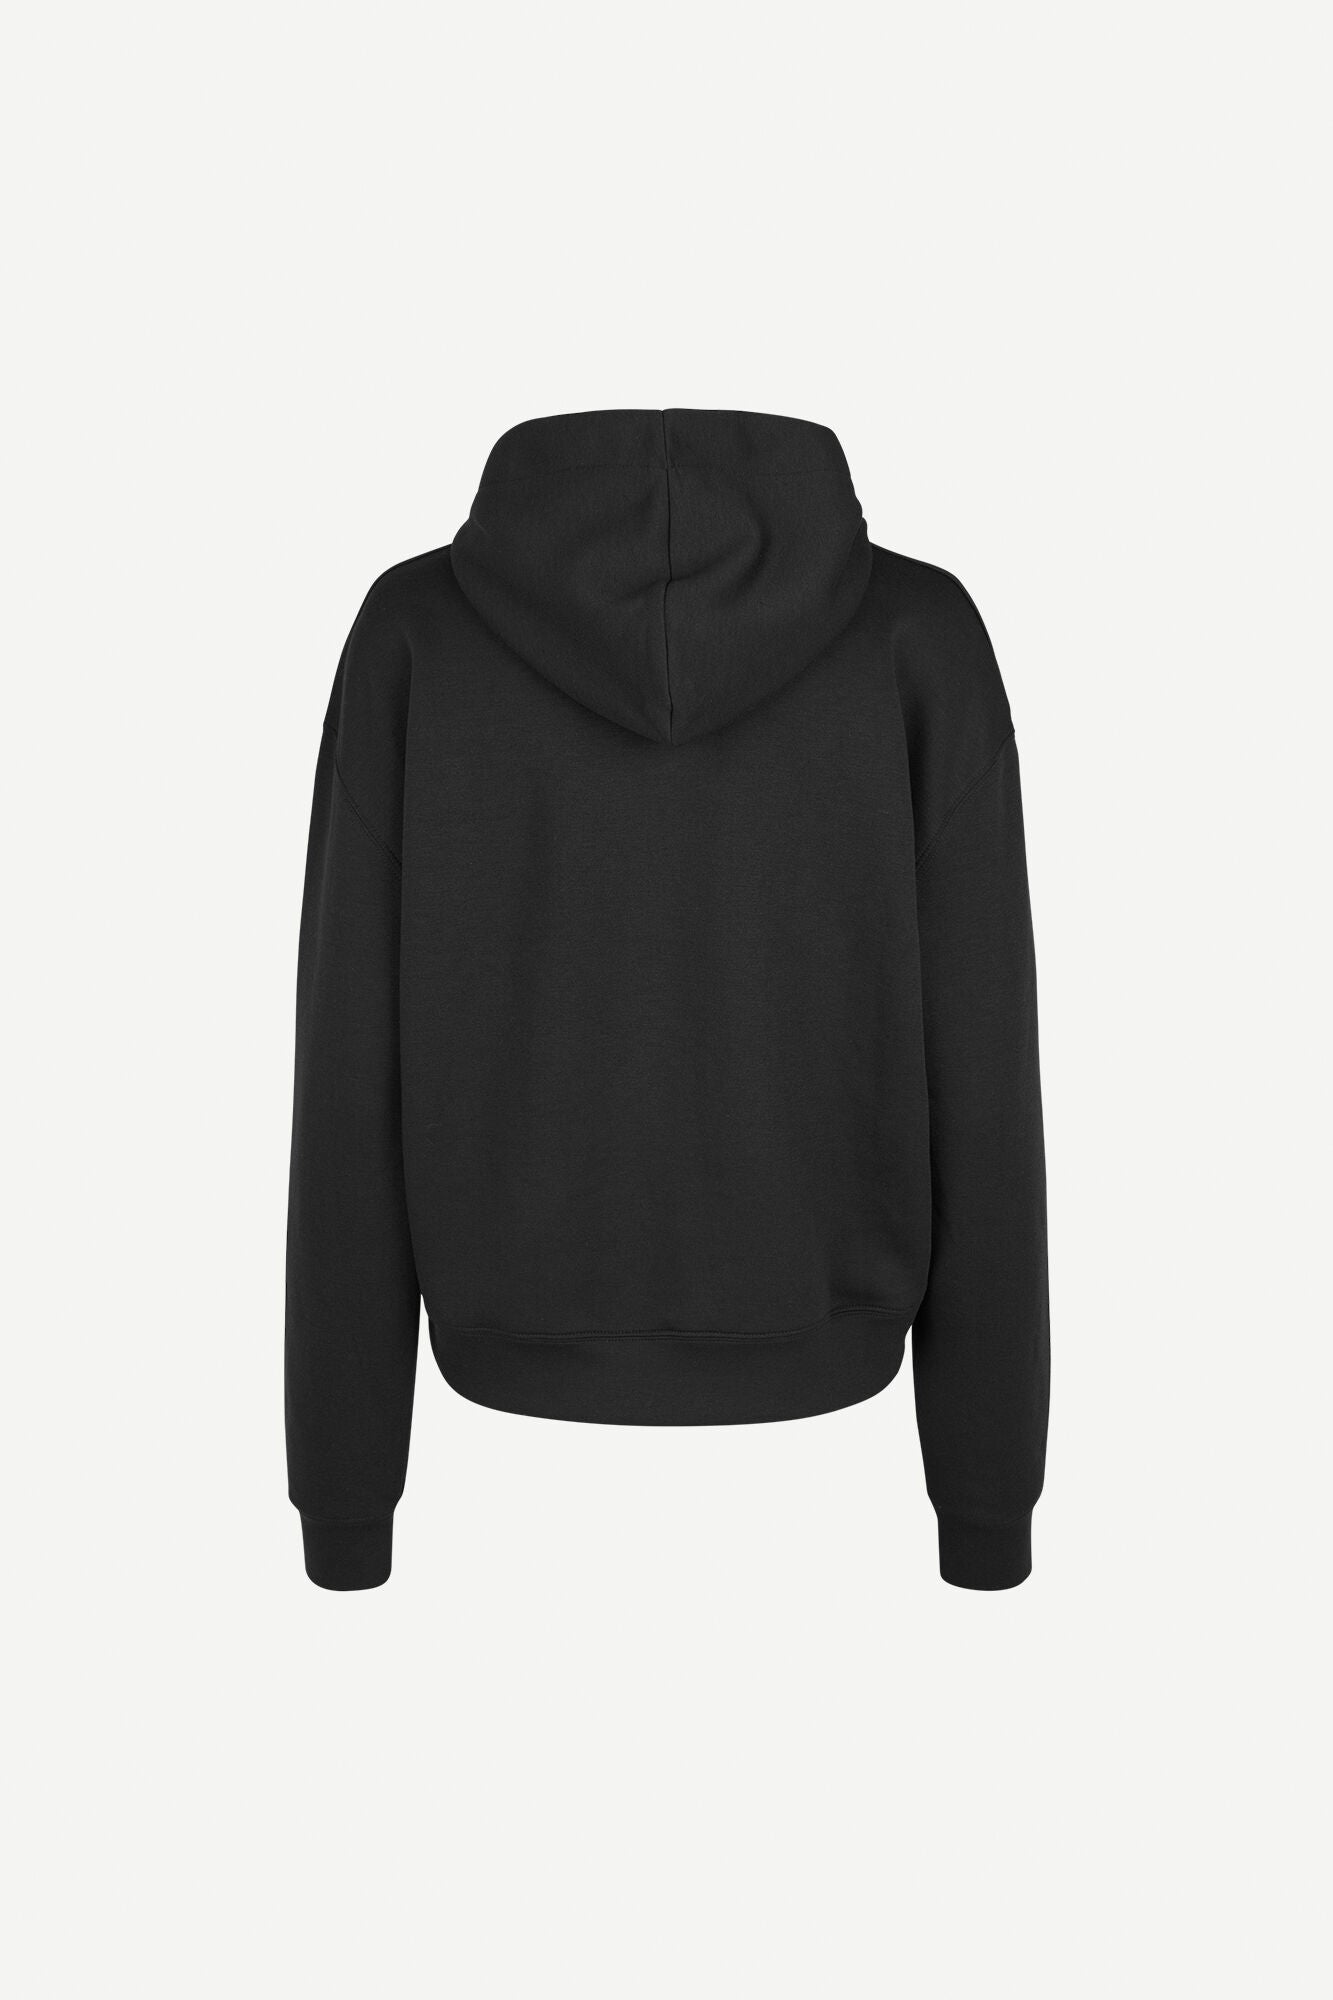 HOODED SWEATER IN BLACK